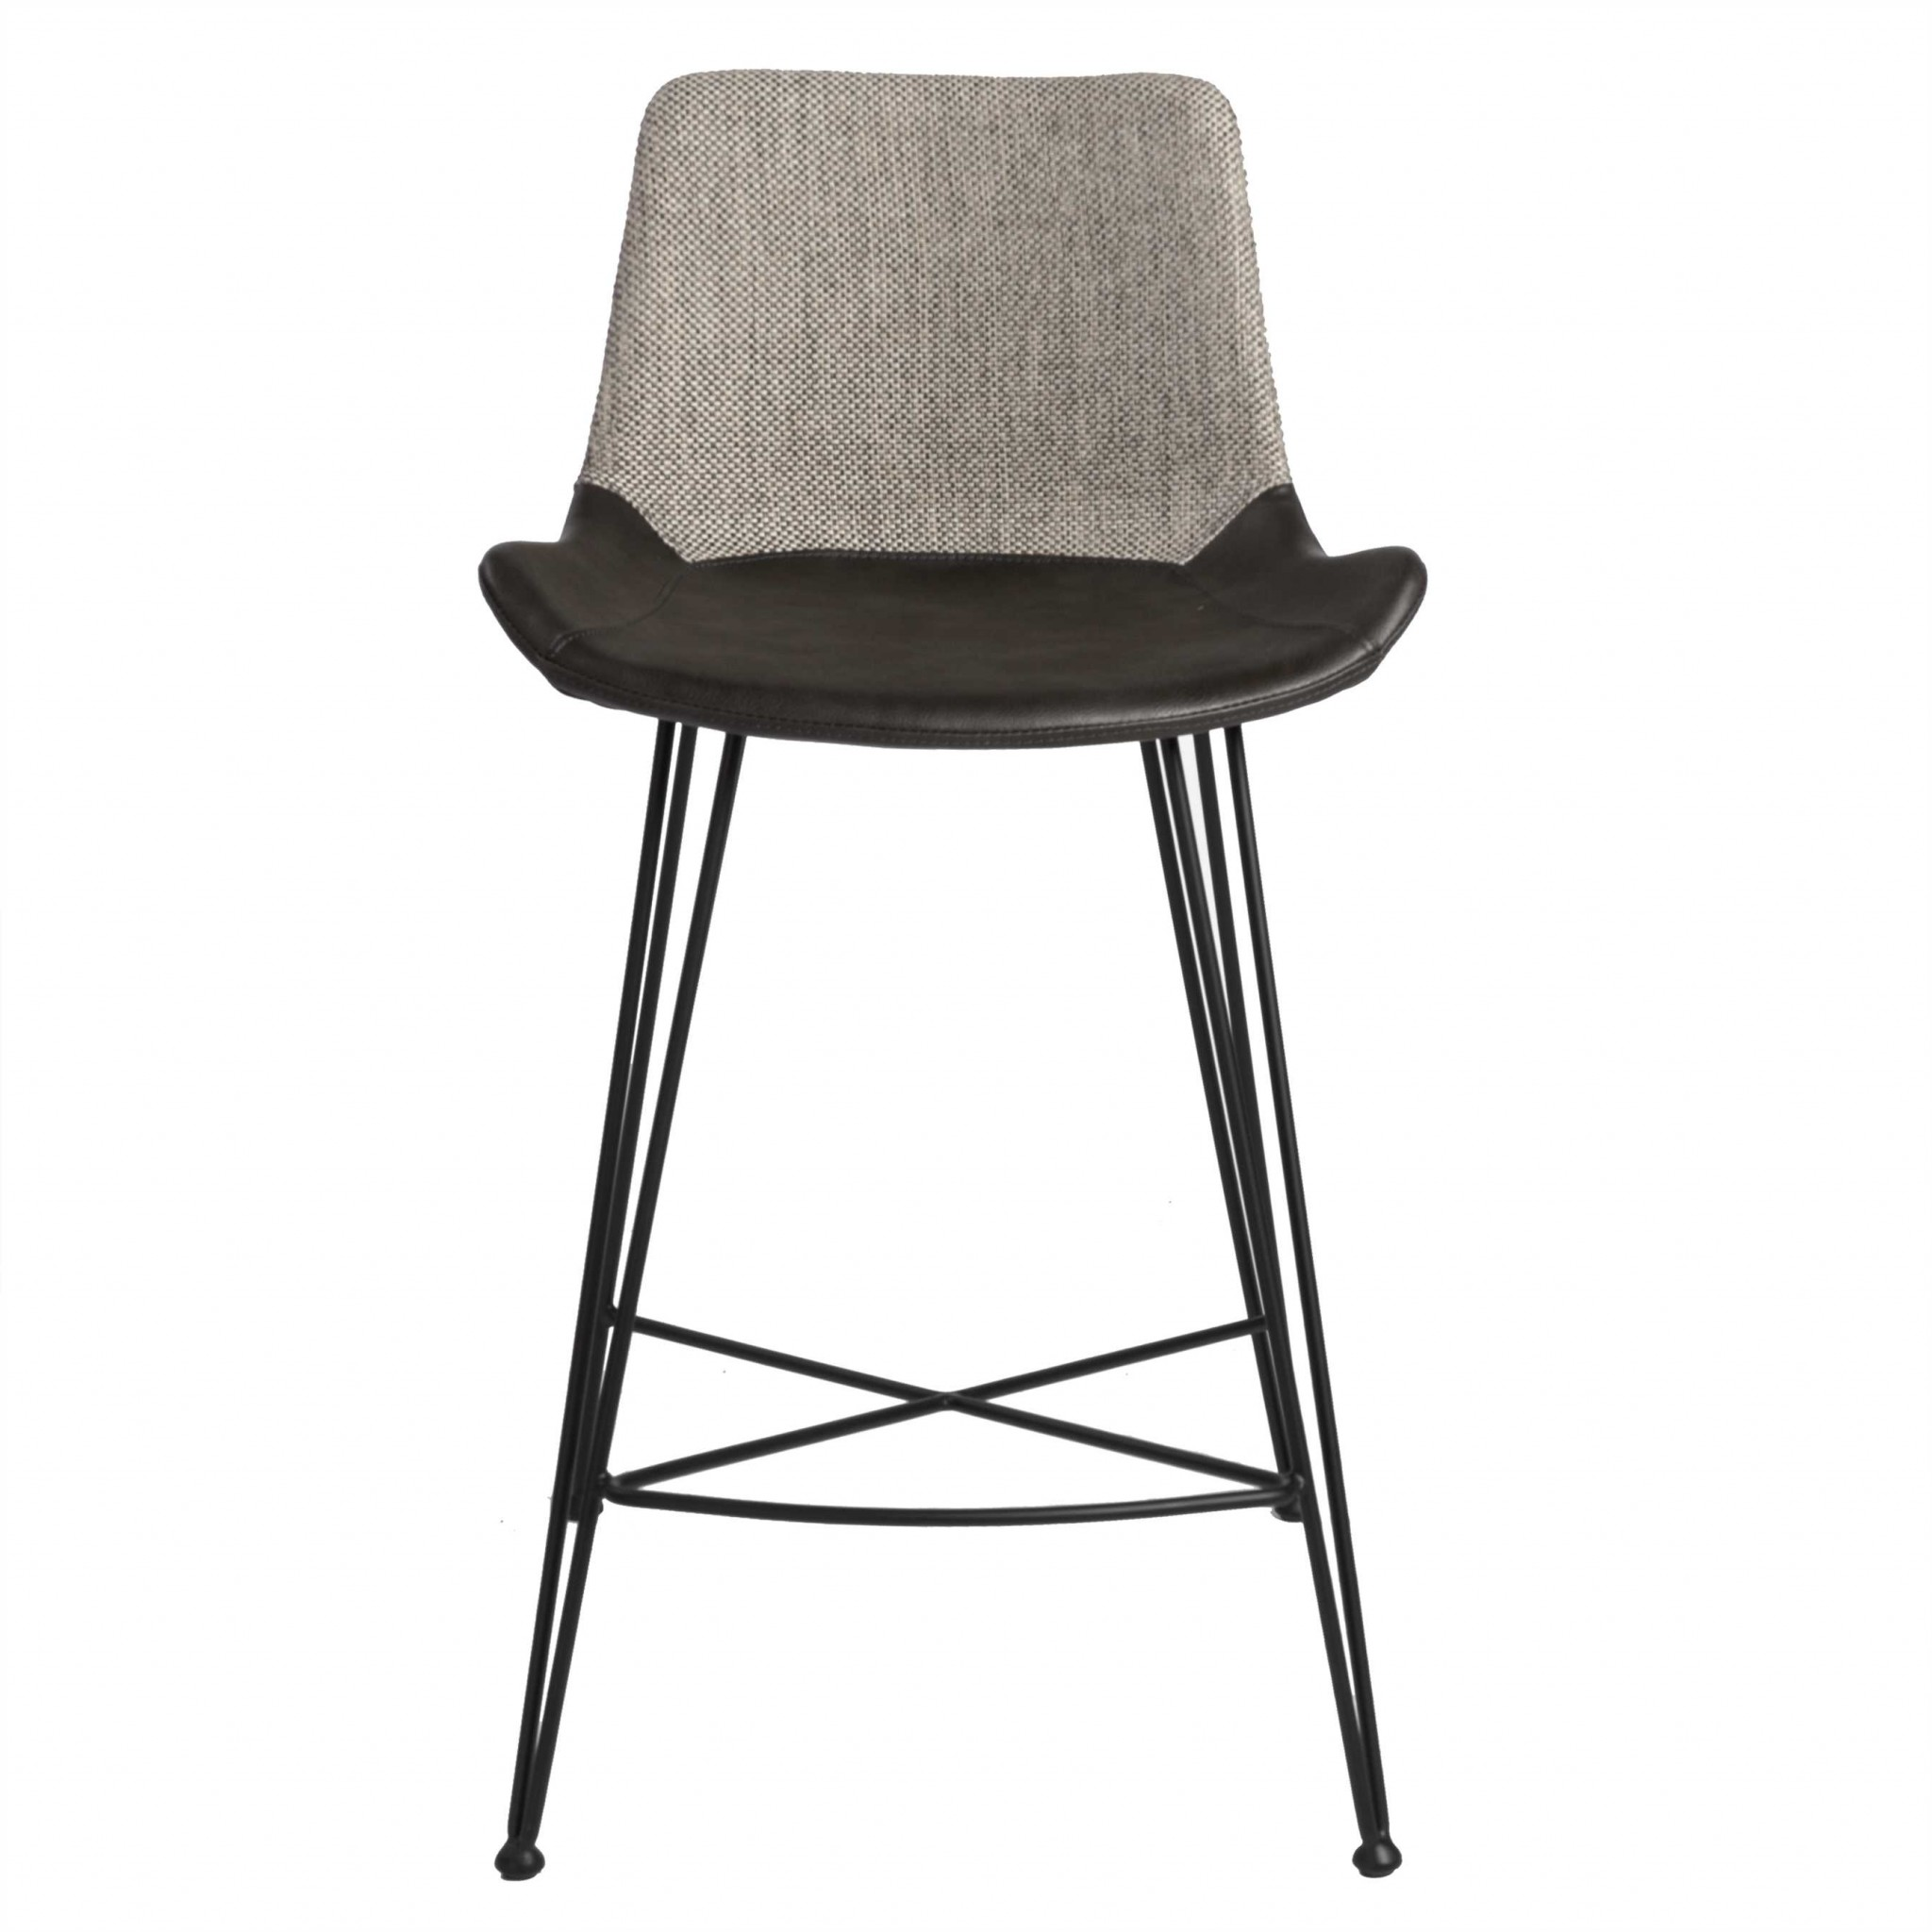 """22.45"""" X 19.3"""" X 35.83"""" Light Gray Leatherette Counter Stool with Matte Black Legs"""